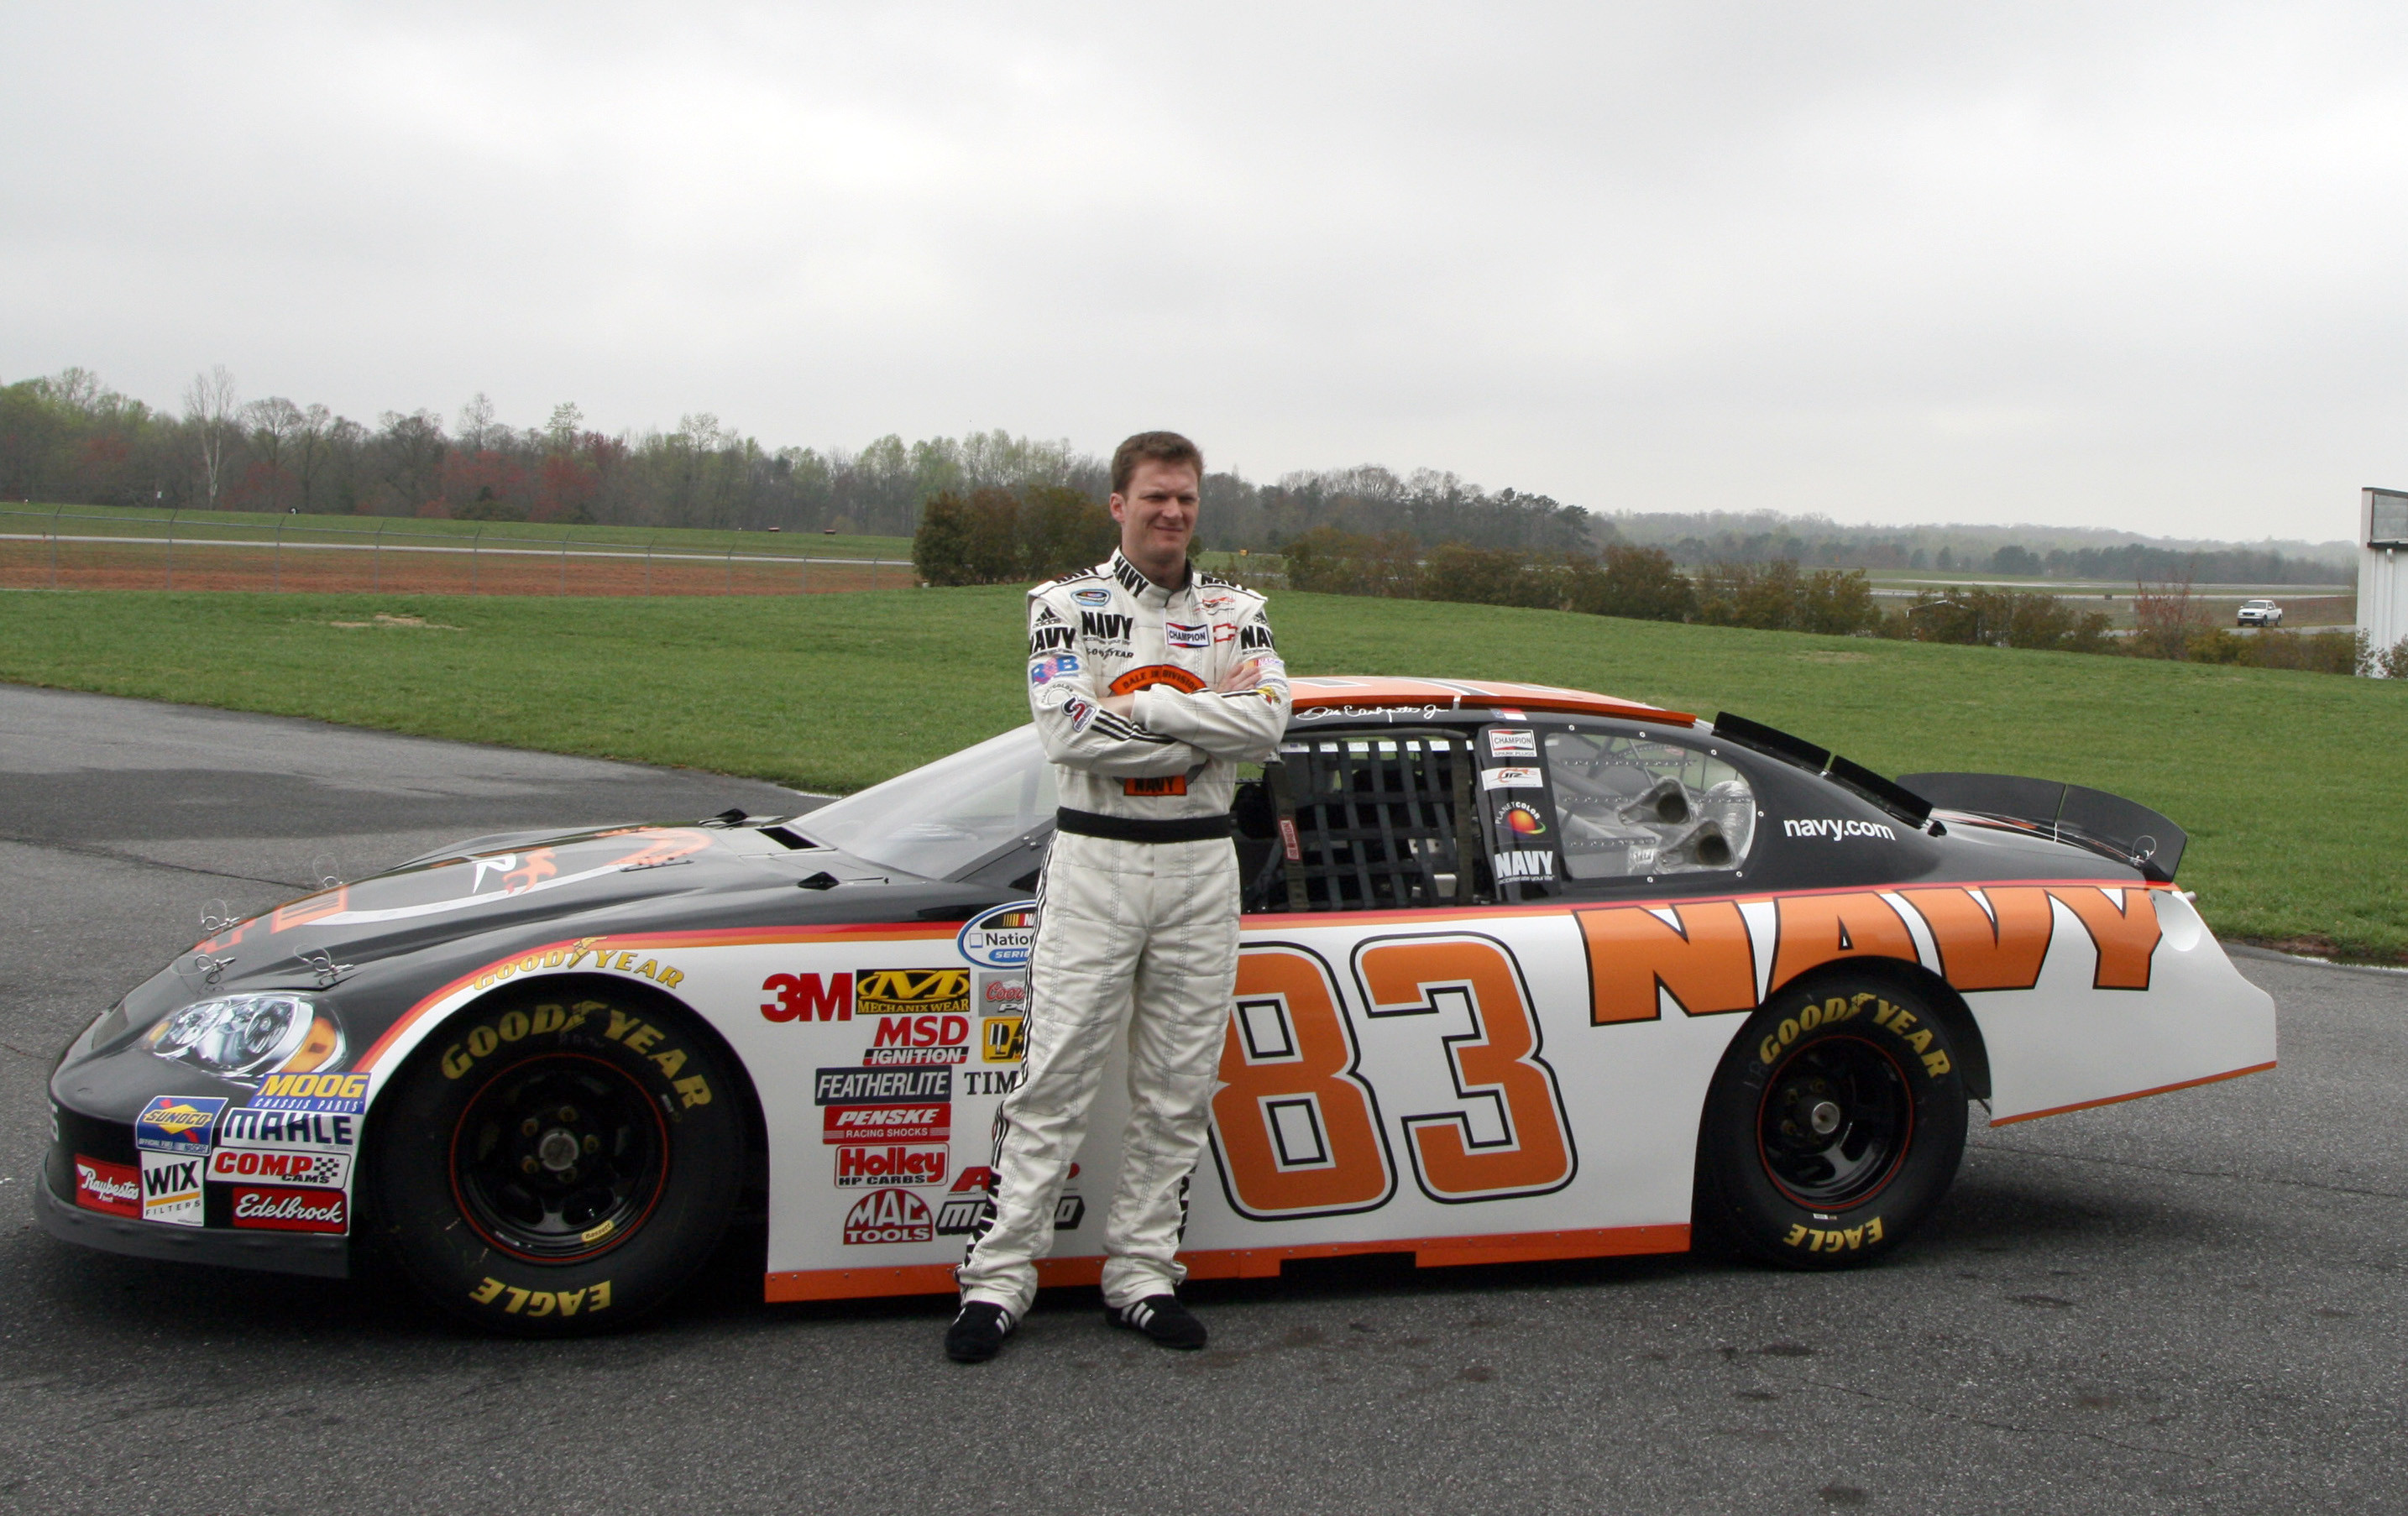 File:Dale Earnhardt Jr with Nationwide Series No 83 car.jpg